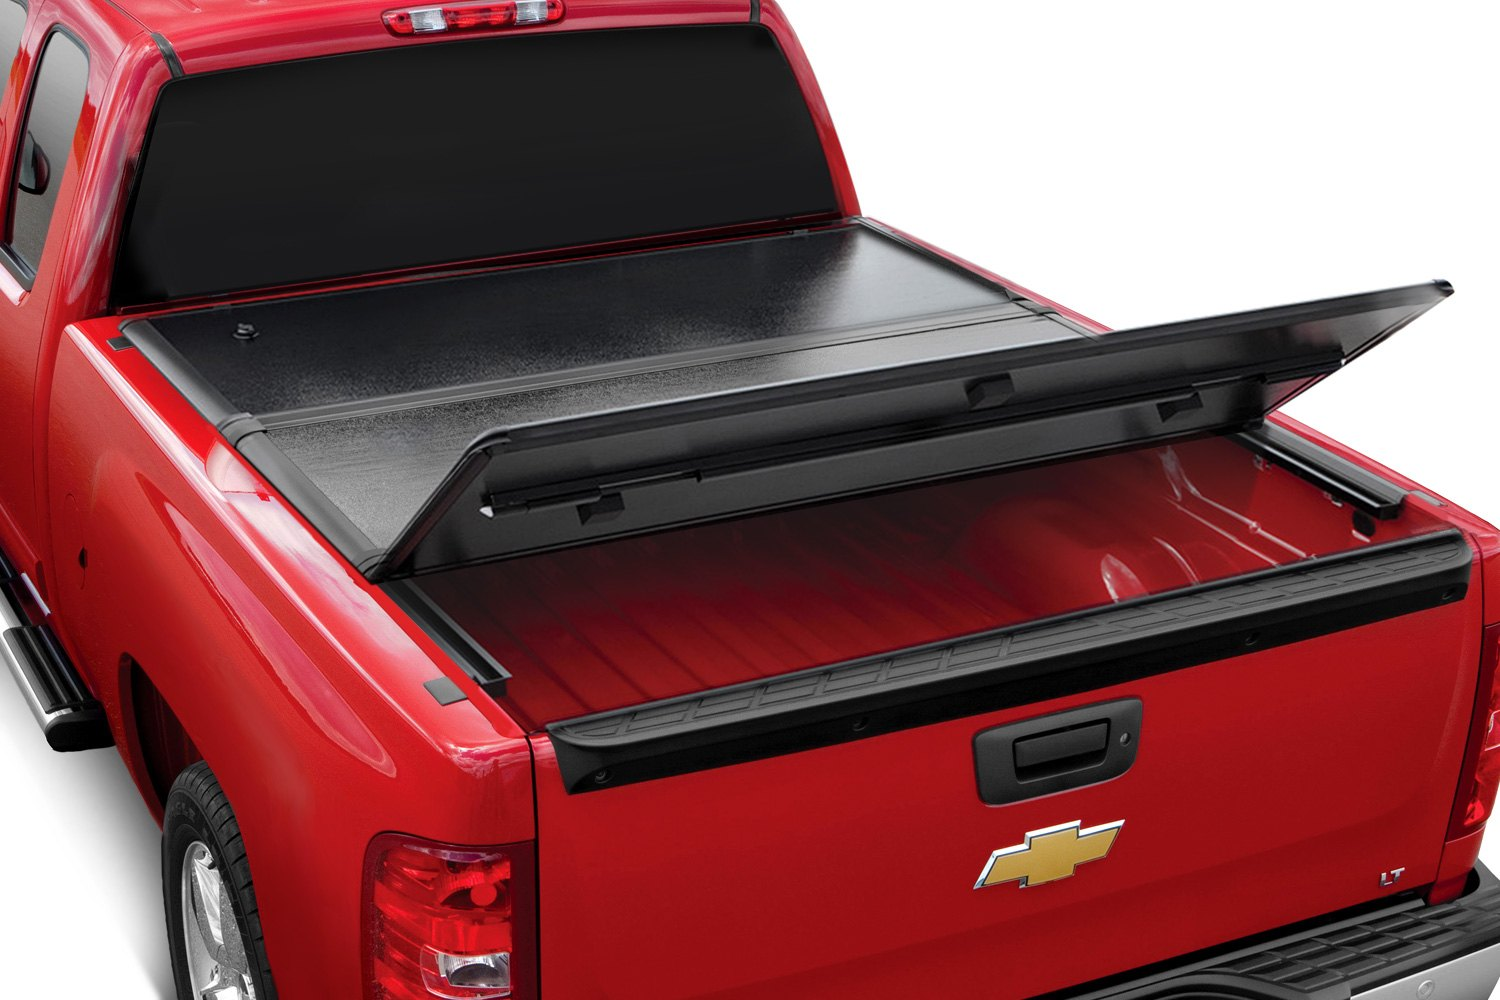 Chevrolet Truck Hard Bed Covers